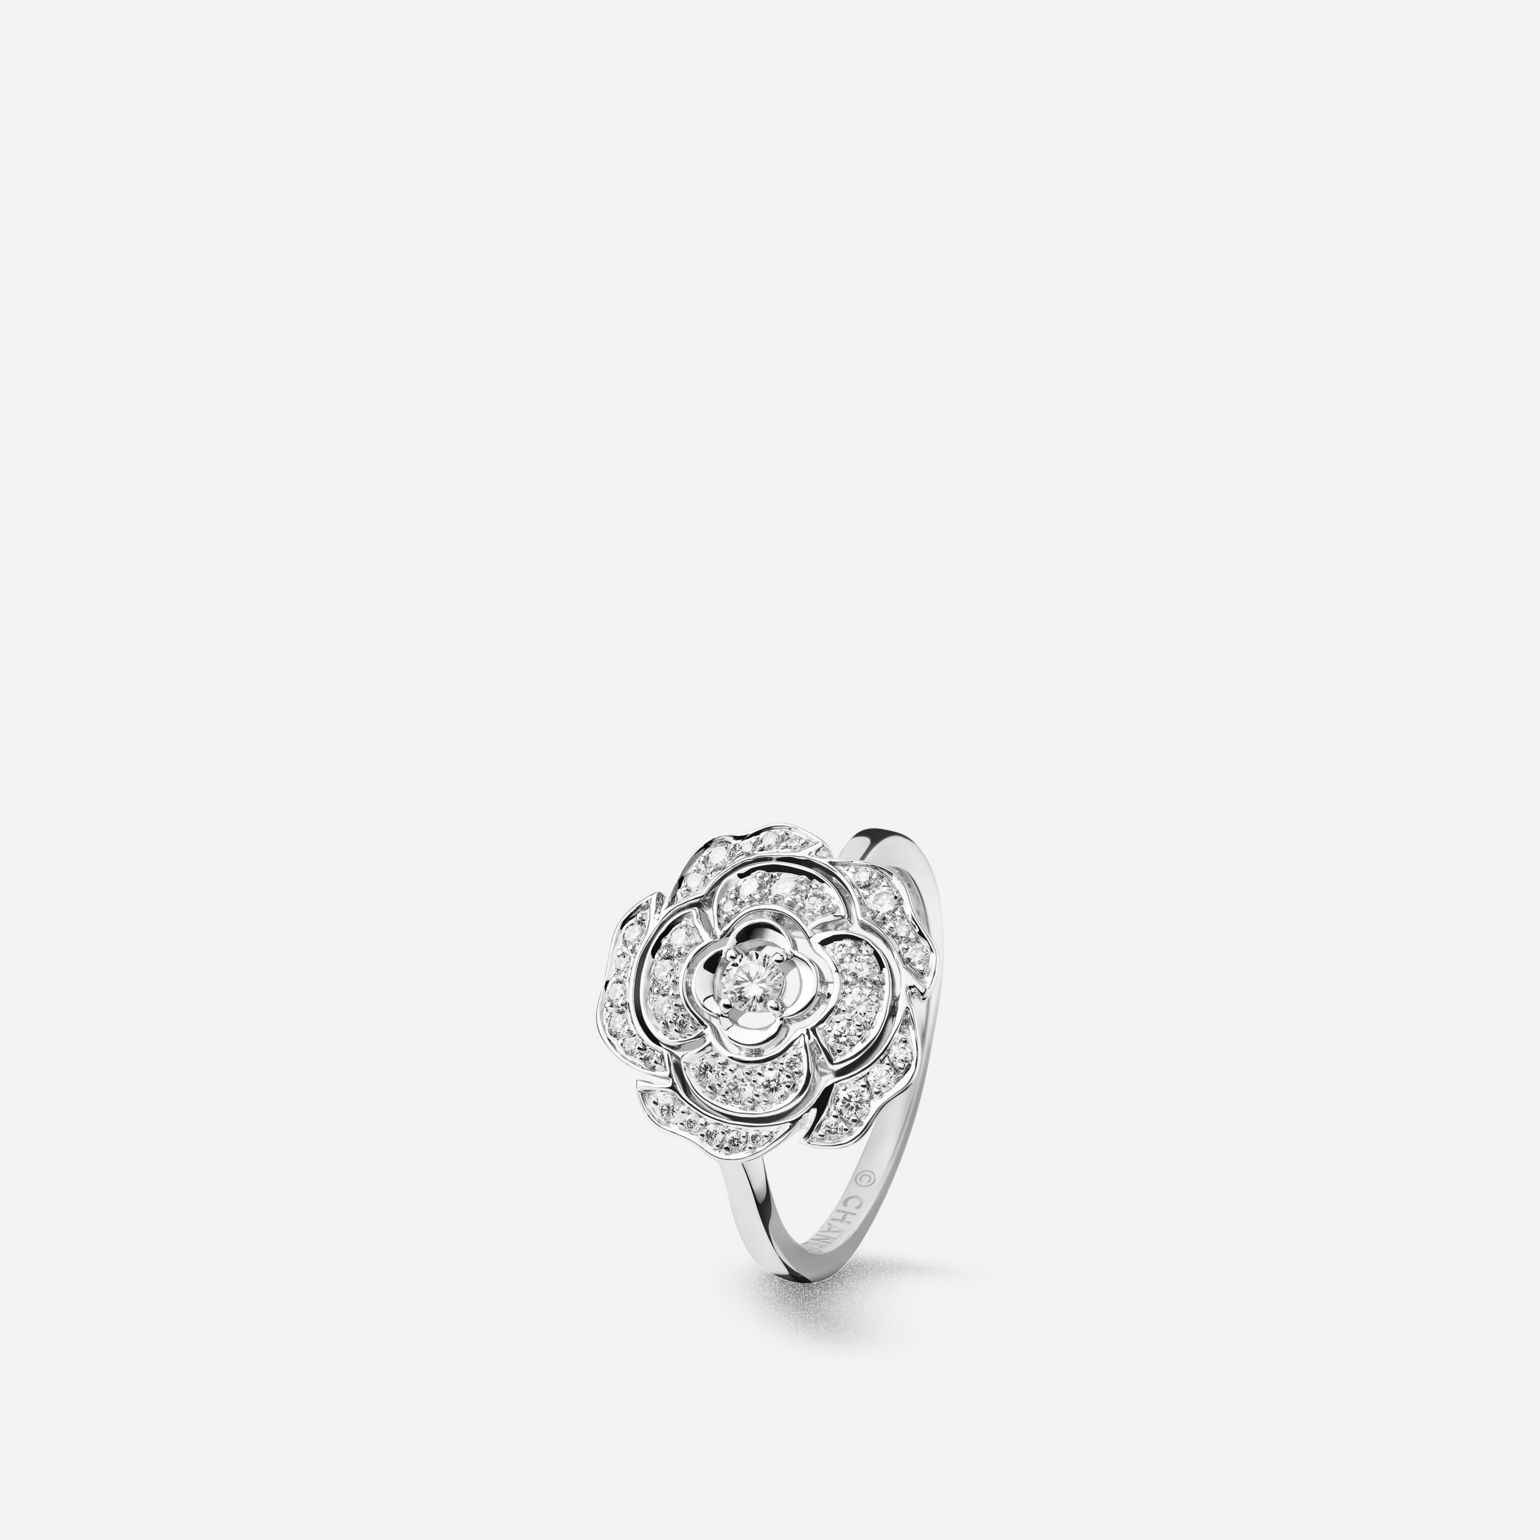 Camélia ring  Bouton de Camélia ring in 18K white gold and diamonds with one center diamond